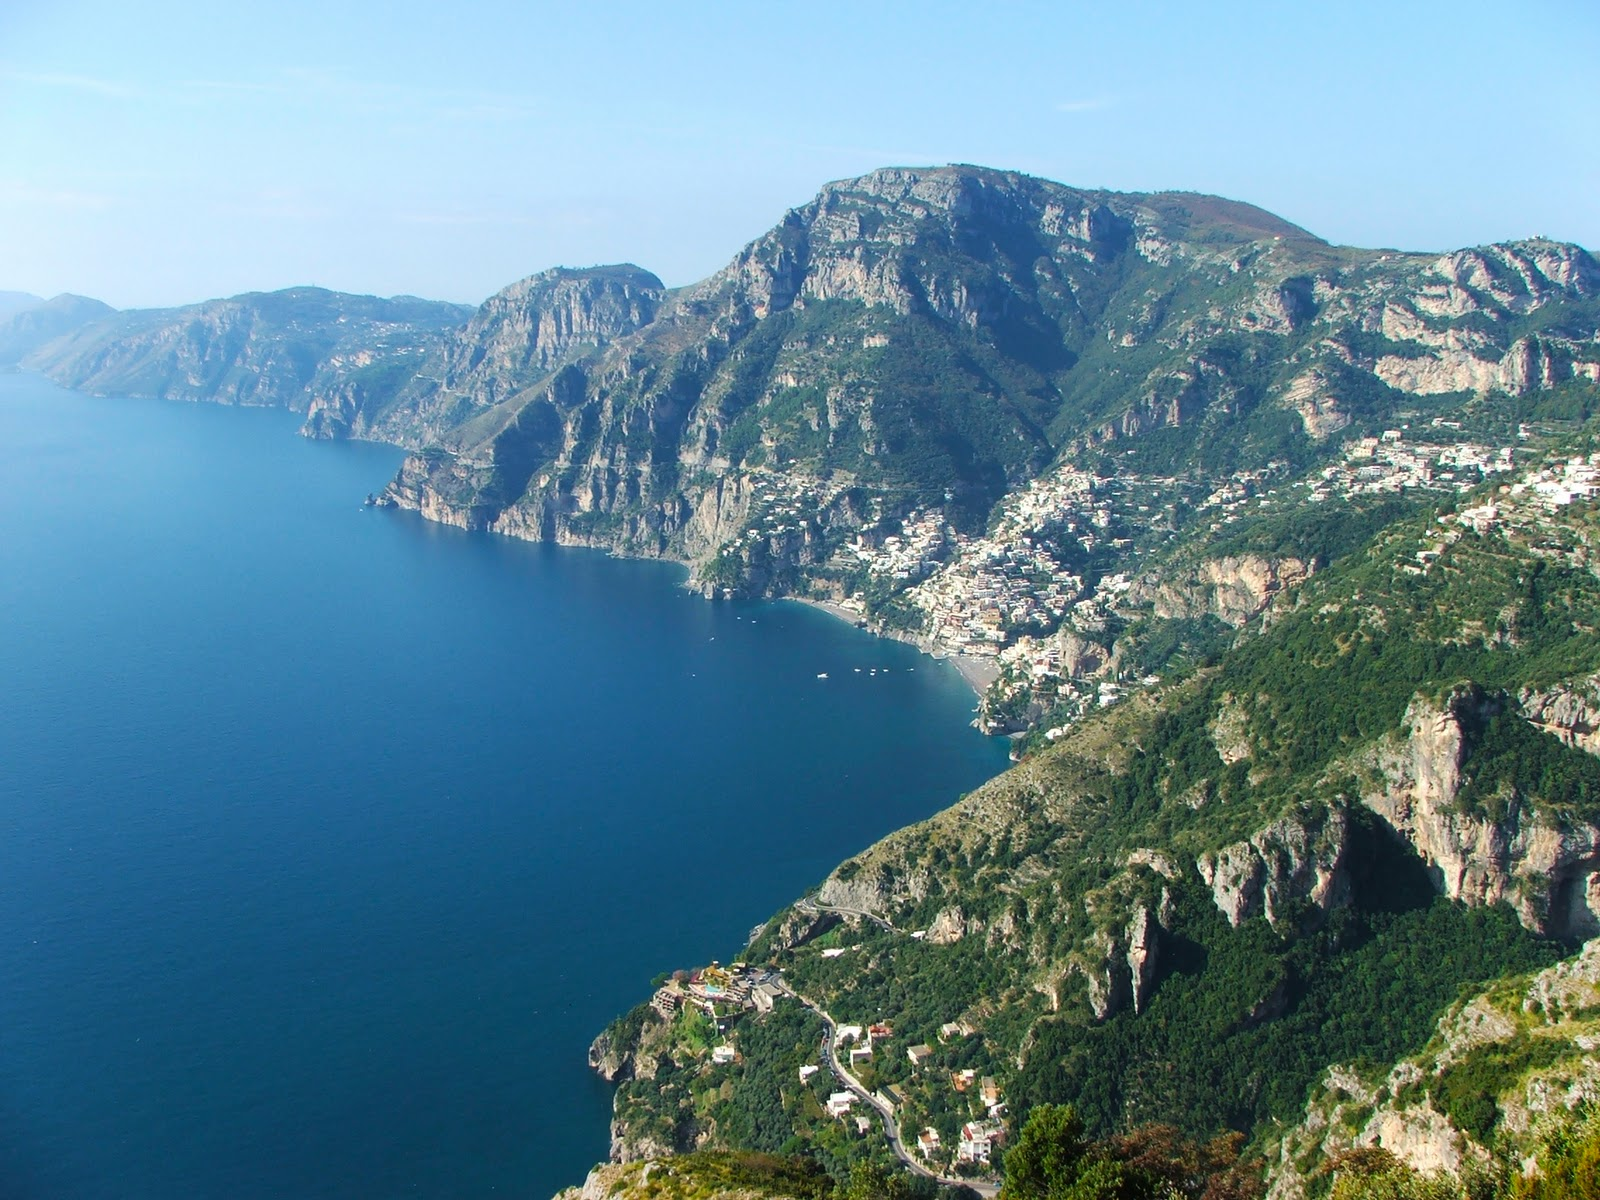 Trekking-path of the gods from Agerola to Positano